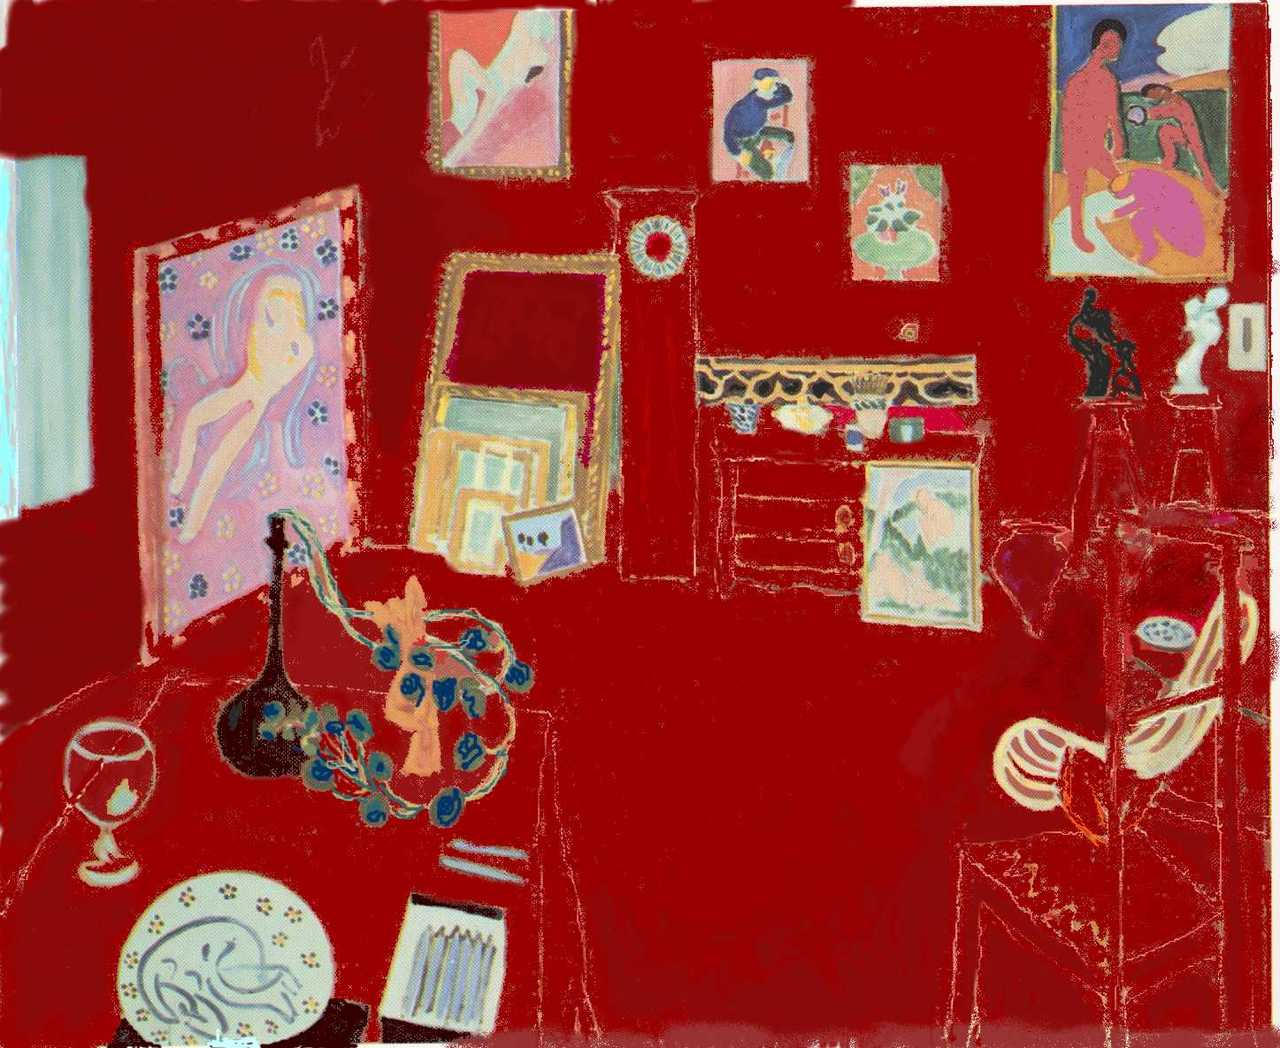 Henri matisse l atelier rouge association pr figurations for Interieur rouge matisse